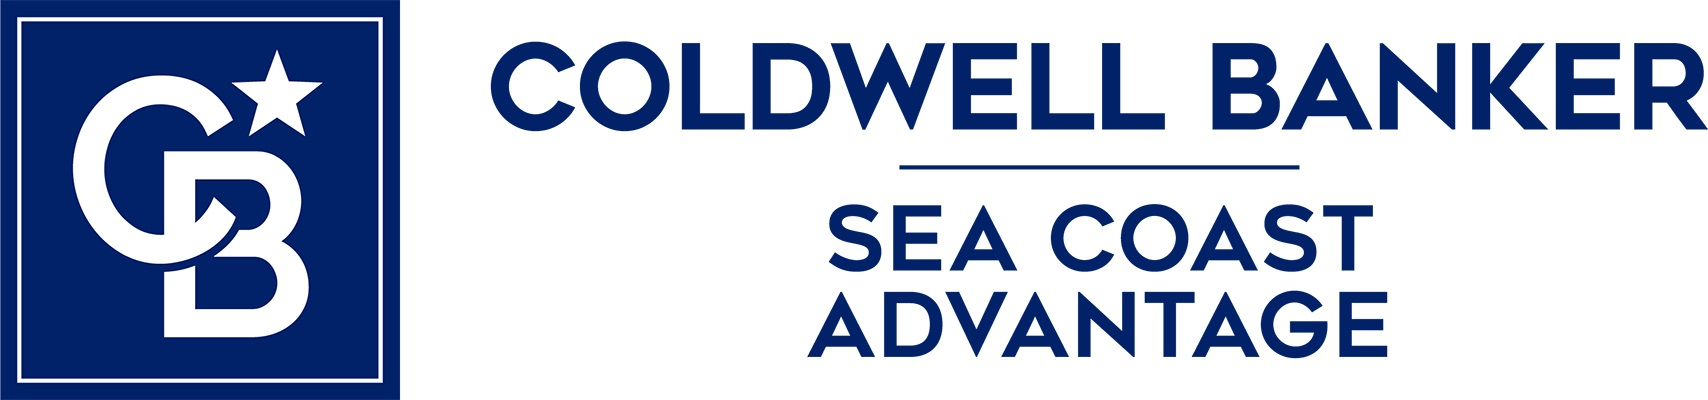 Justin Donaton - Coldwell Banker Sea Coast Advantage Realty